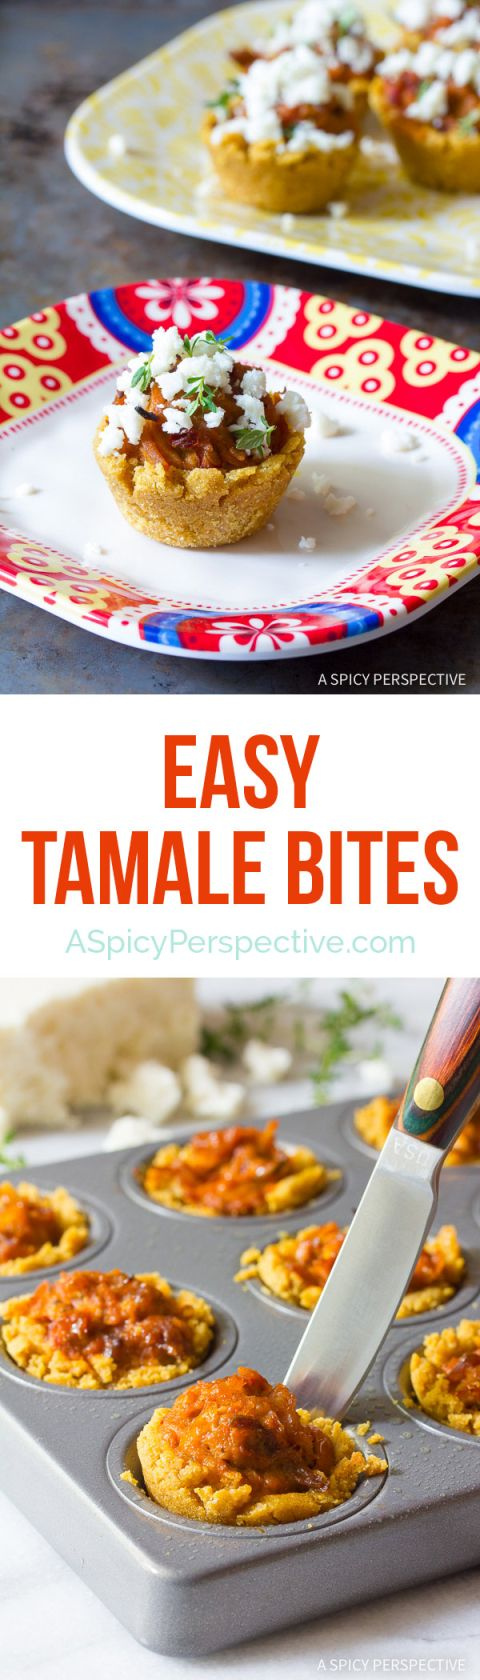 Easy to Make Tamale Bites Recipe on ASpicyPerspective.com                                                                                                                                                                                 More